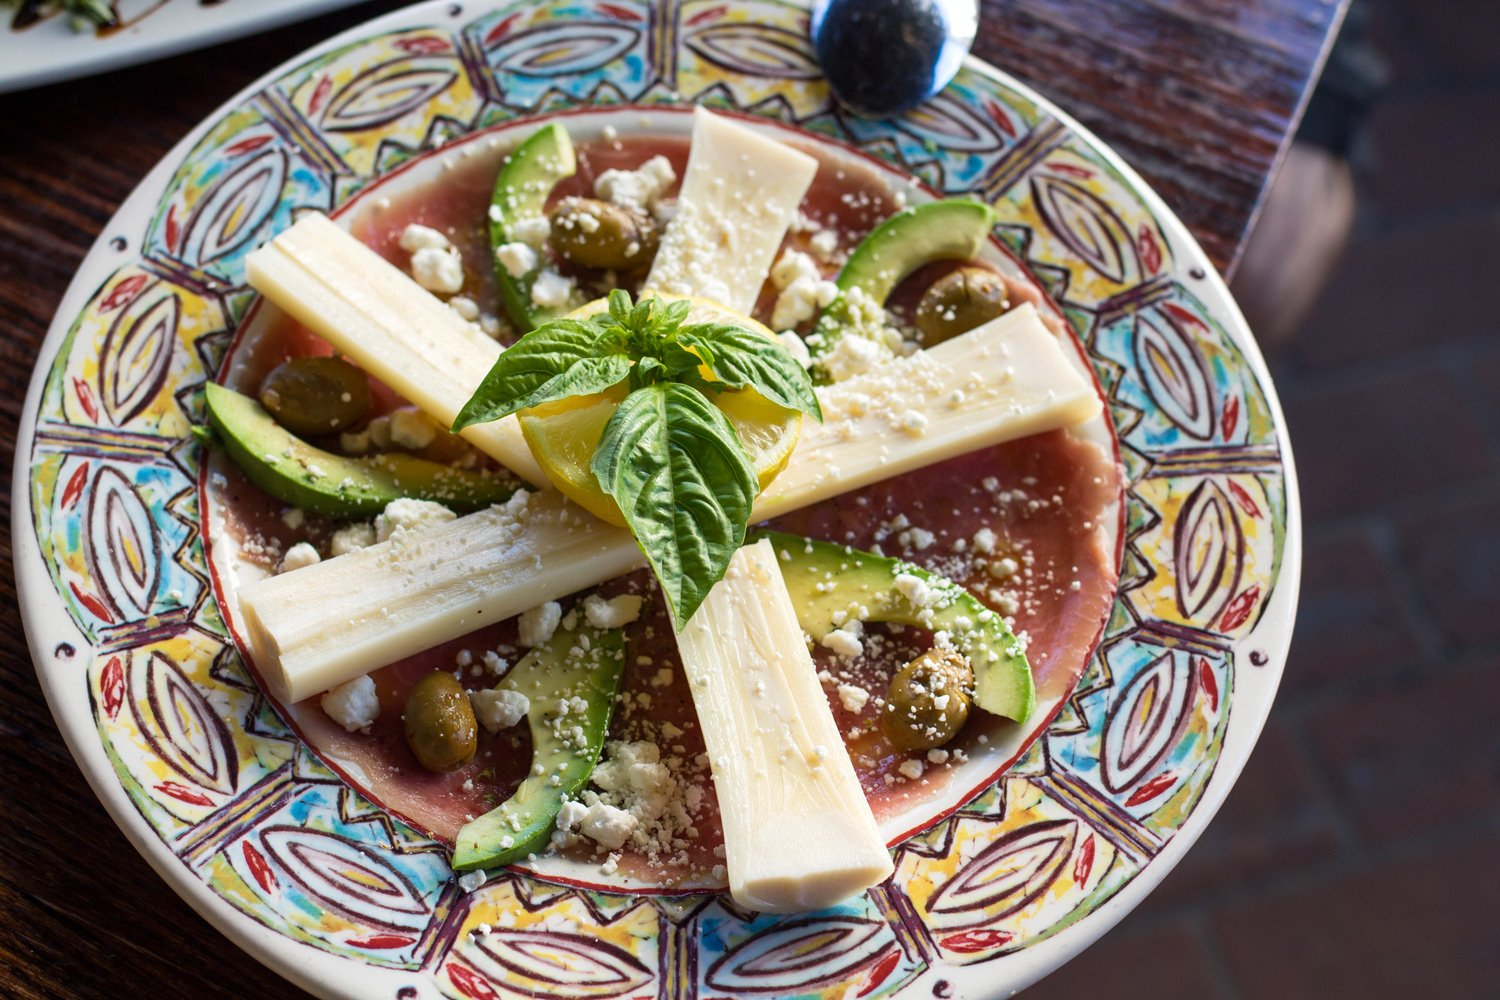 The Carpaccio Palmito - Thinly slice filet mignon with hearts of palm and avocado.